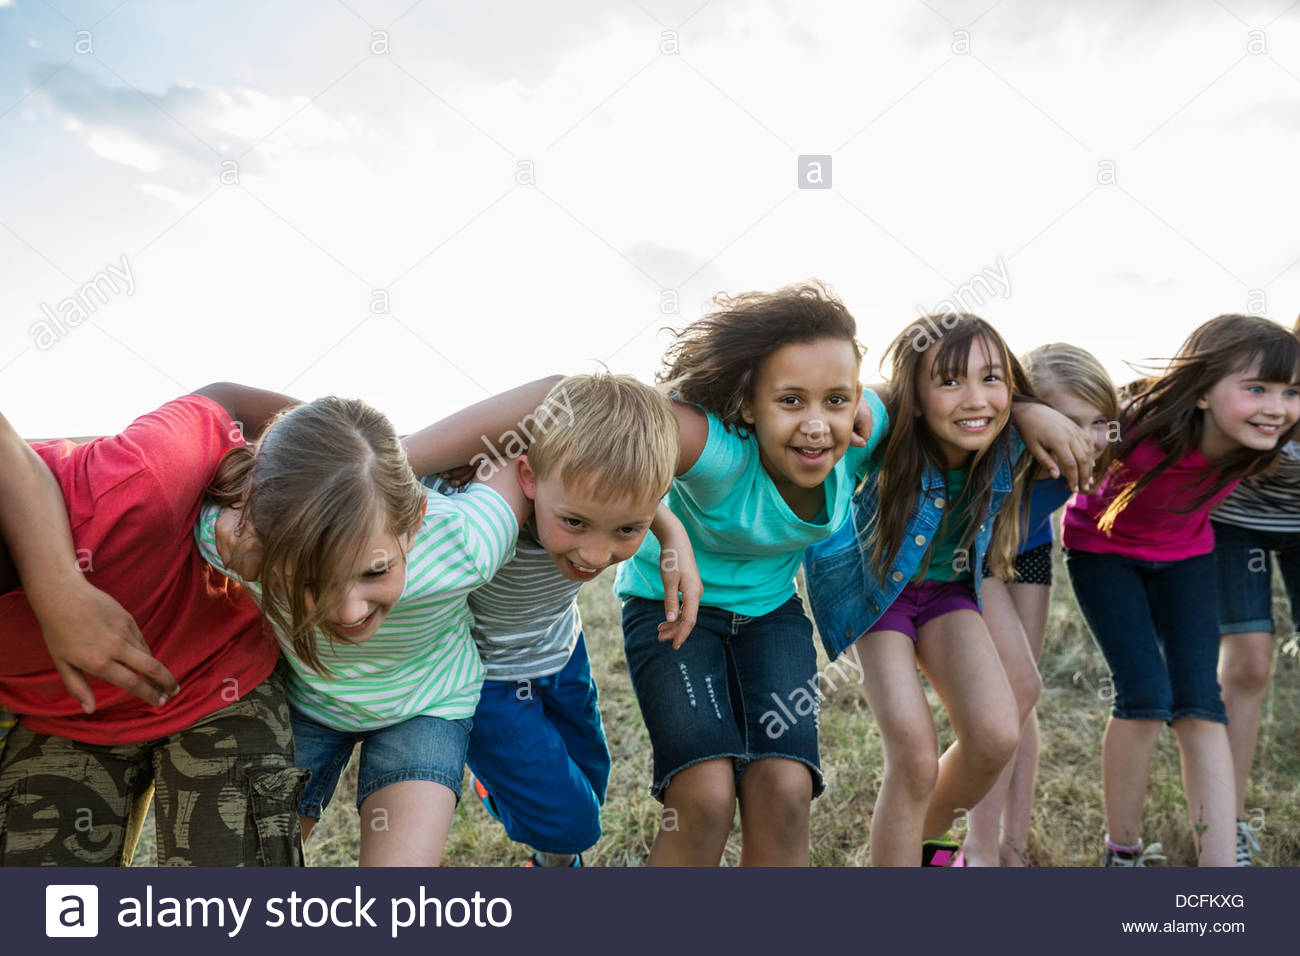 Group portrait of smiling kids standing in a row - Stock Image